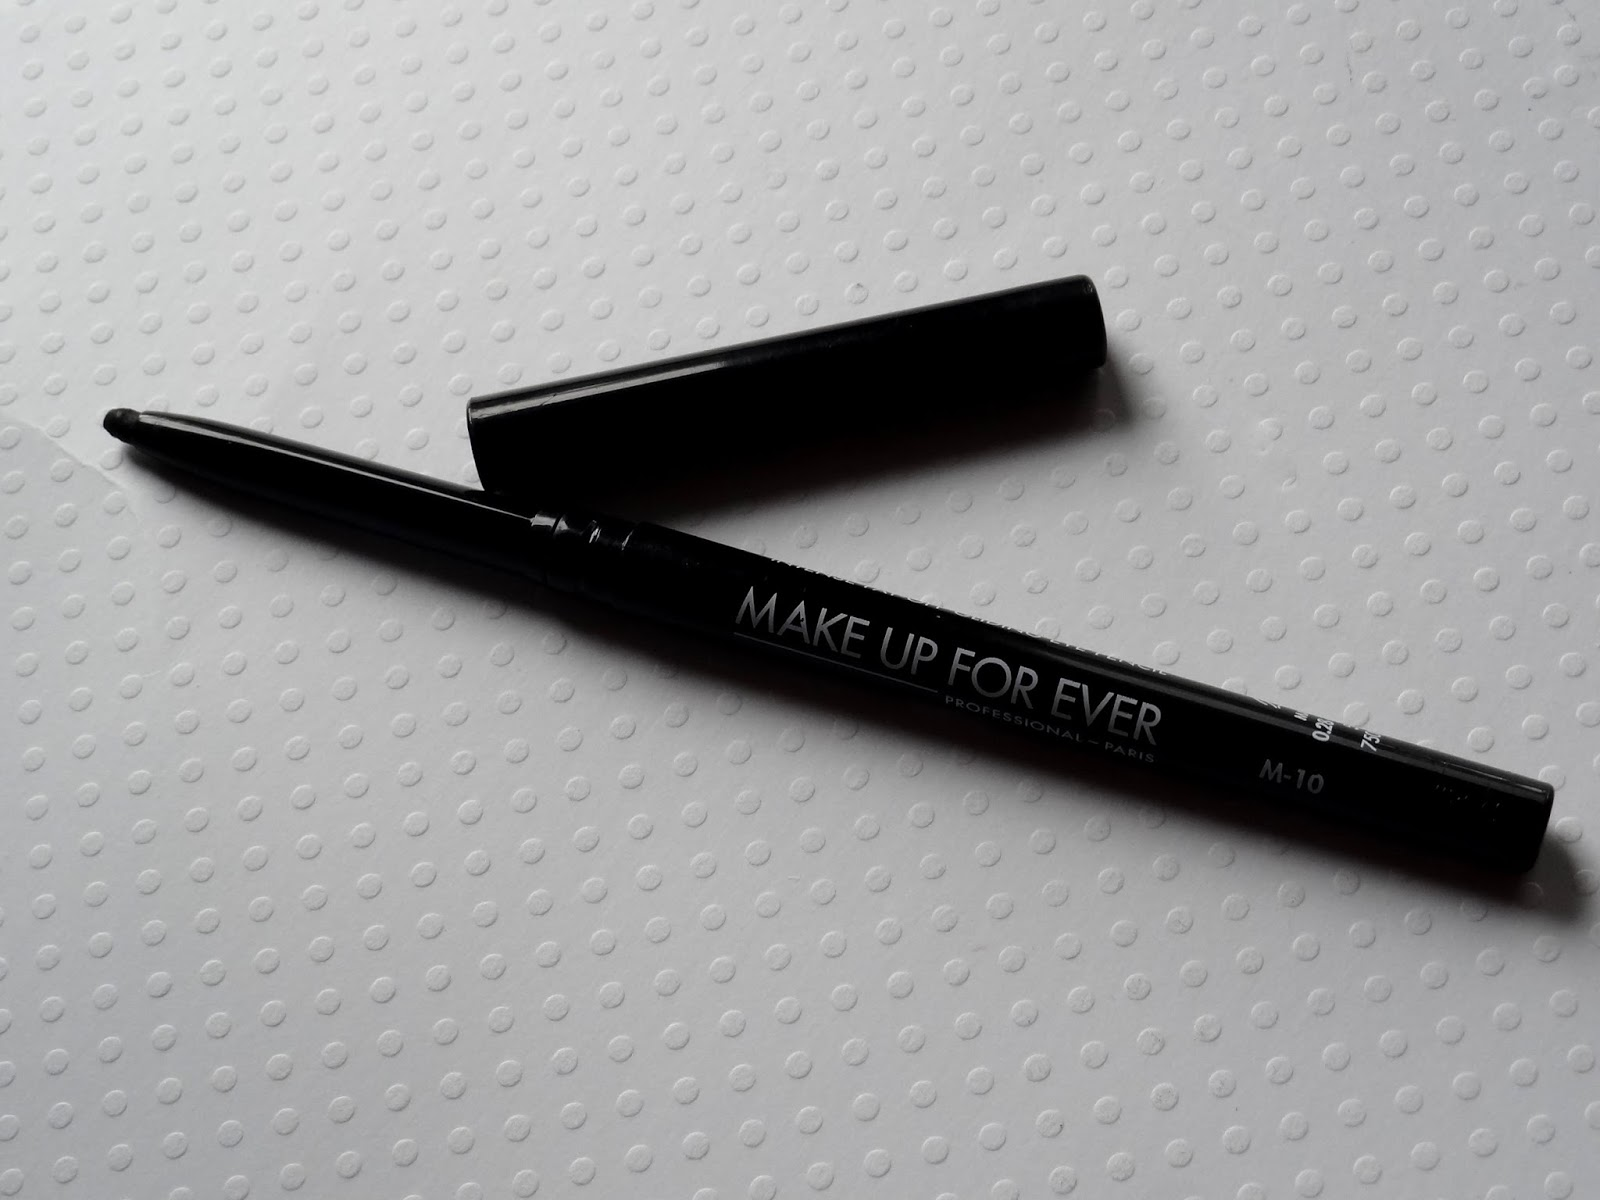 make up for ever eyeliner in m10